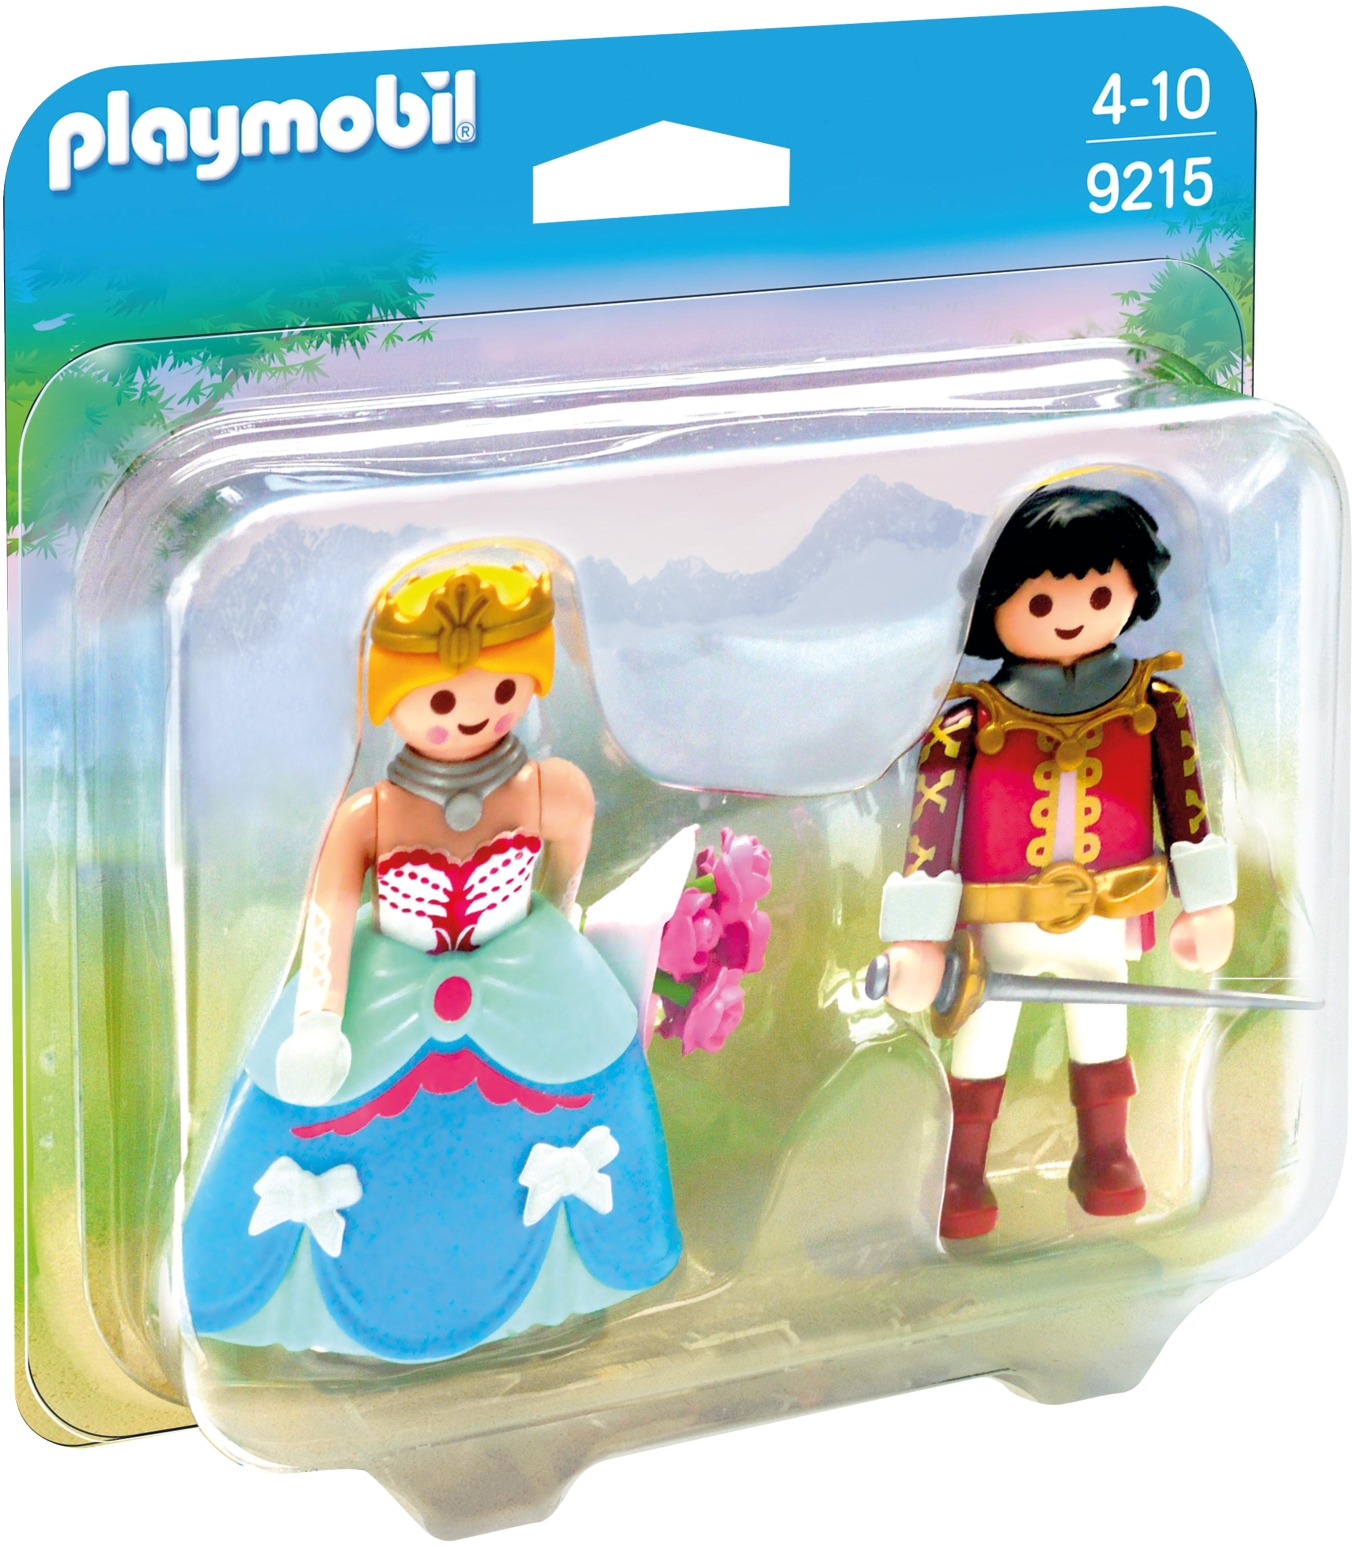 Playmobil Collectable Prince & Princess 9215